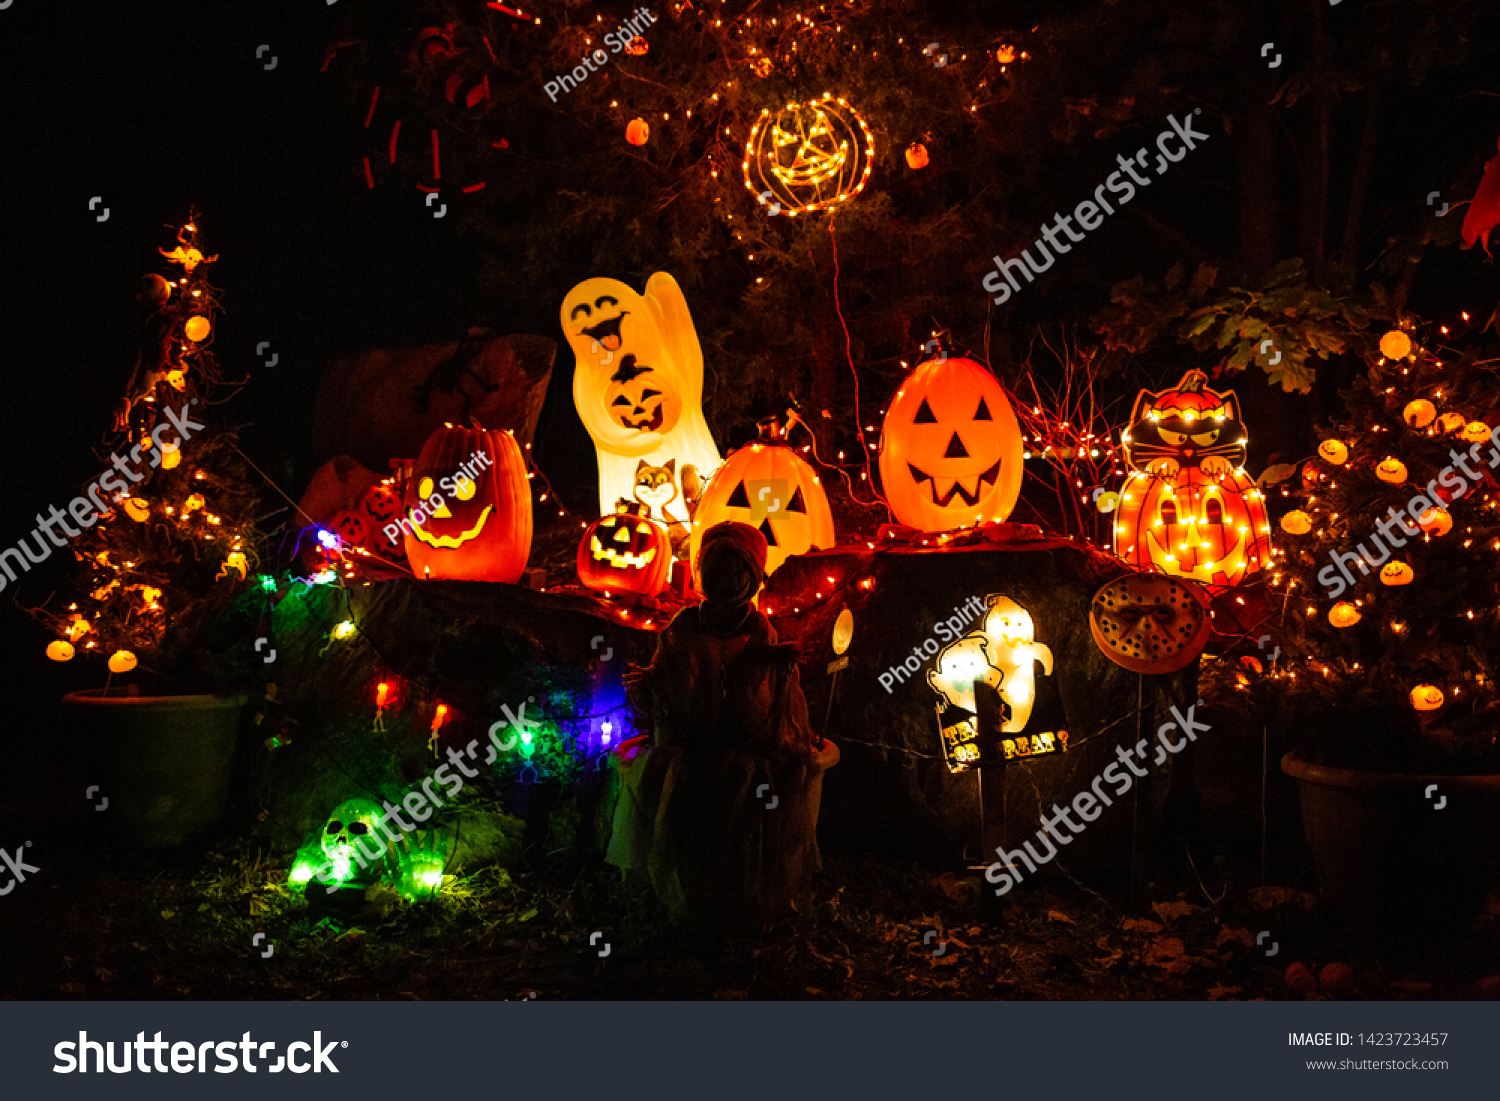 Image of: Scary Halloween Decorations Outdoors Night Lighted Stock Photo Edit Now 1423723457